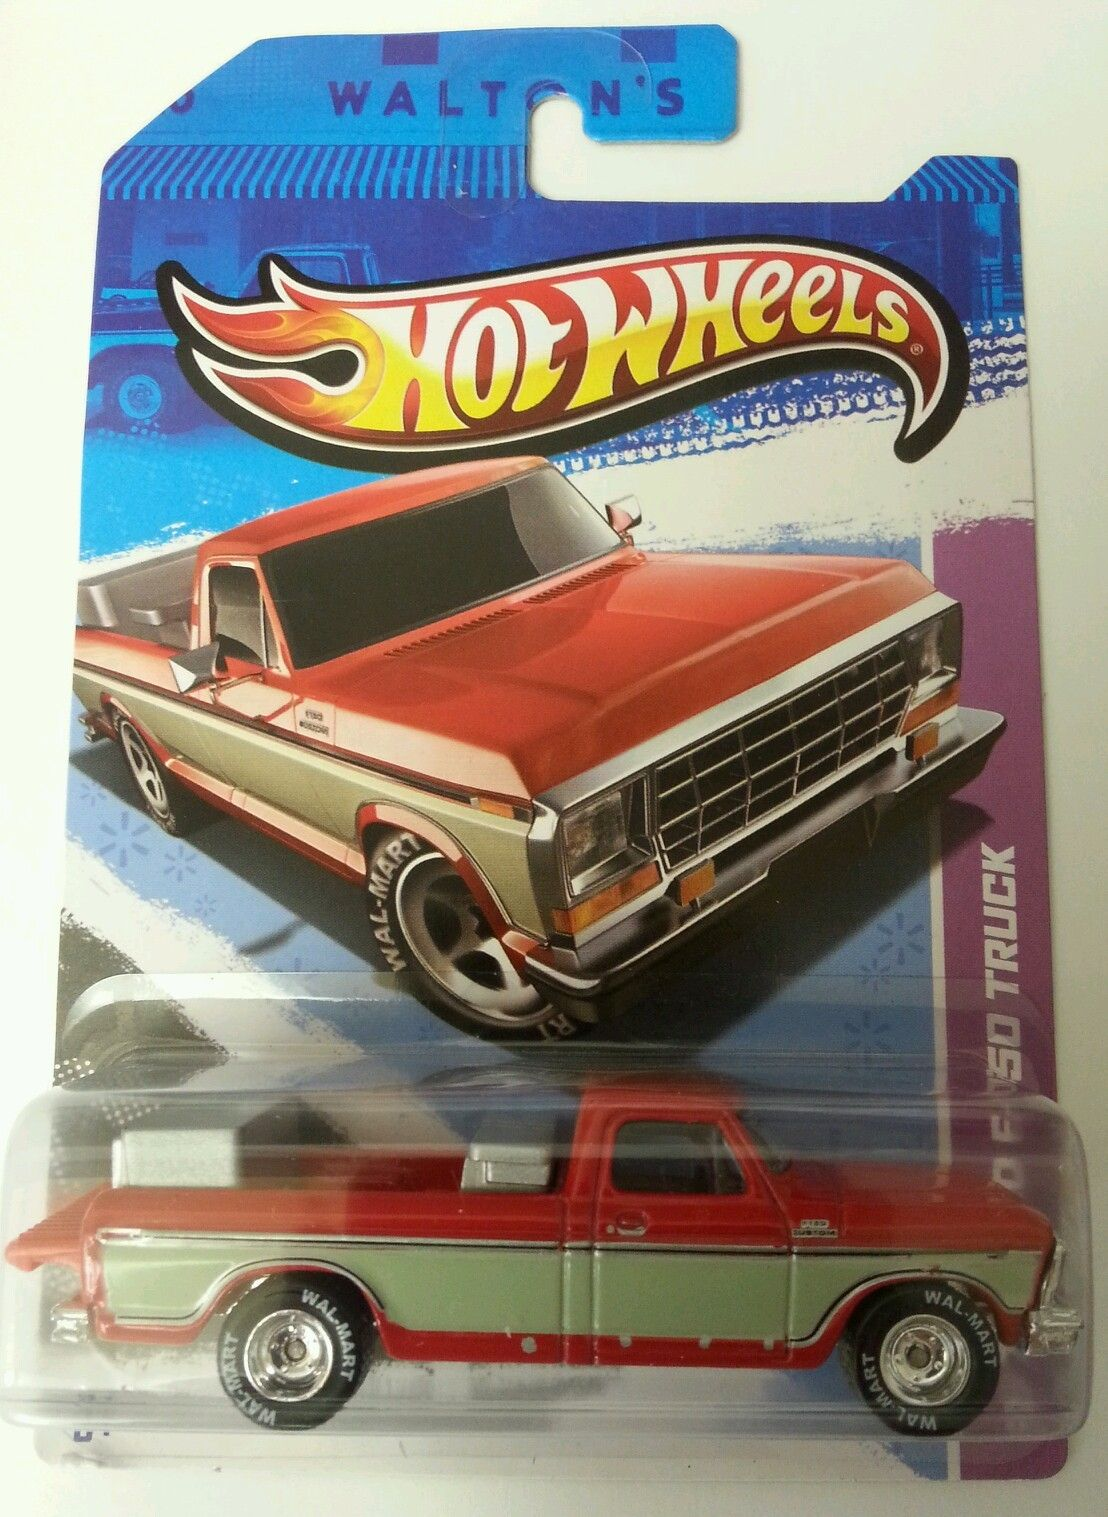 Home by year 1979 cars 1979 trucks car pictures - 2013 Hot Wheels 1979 Ford Truck Real Rider Tires I Have This Truck